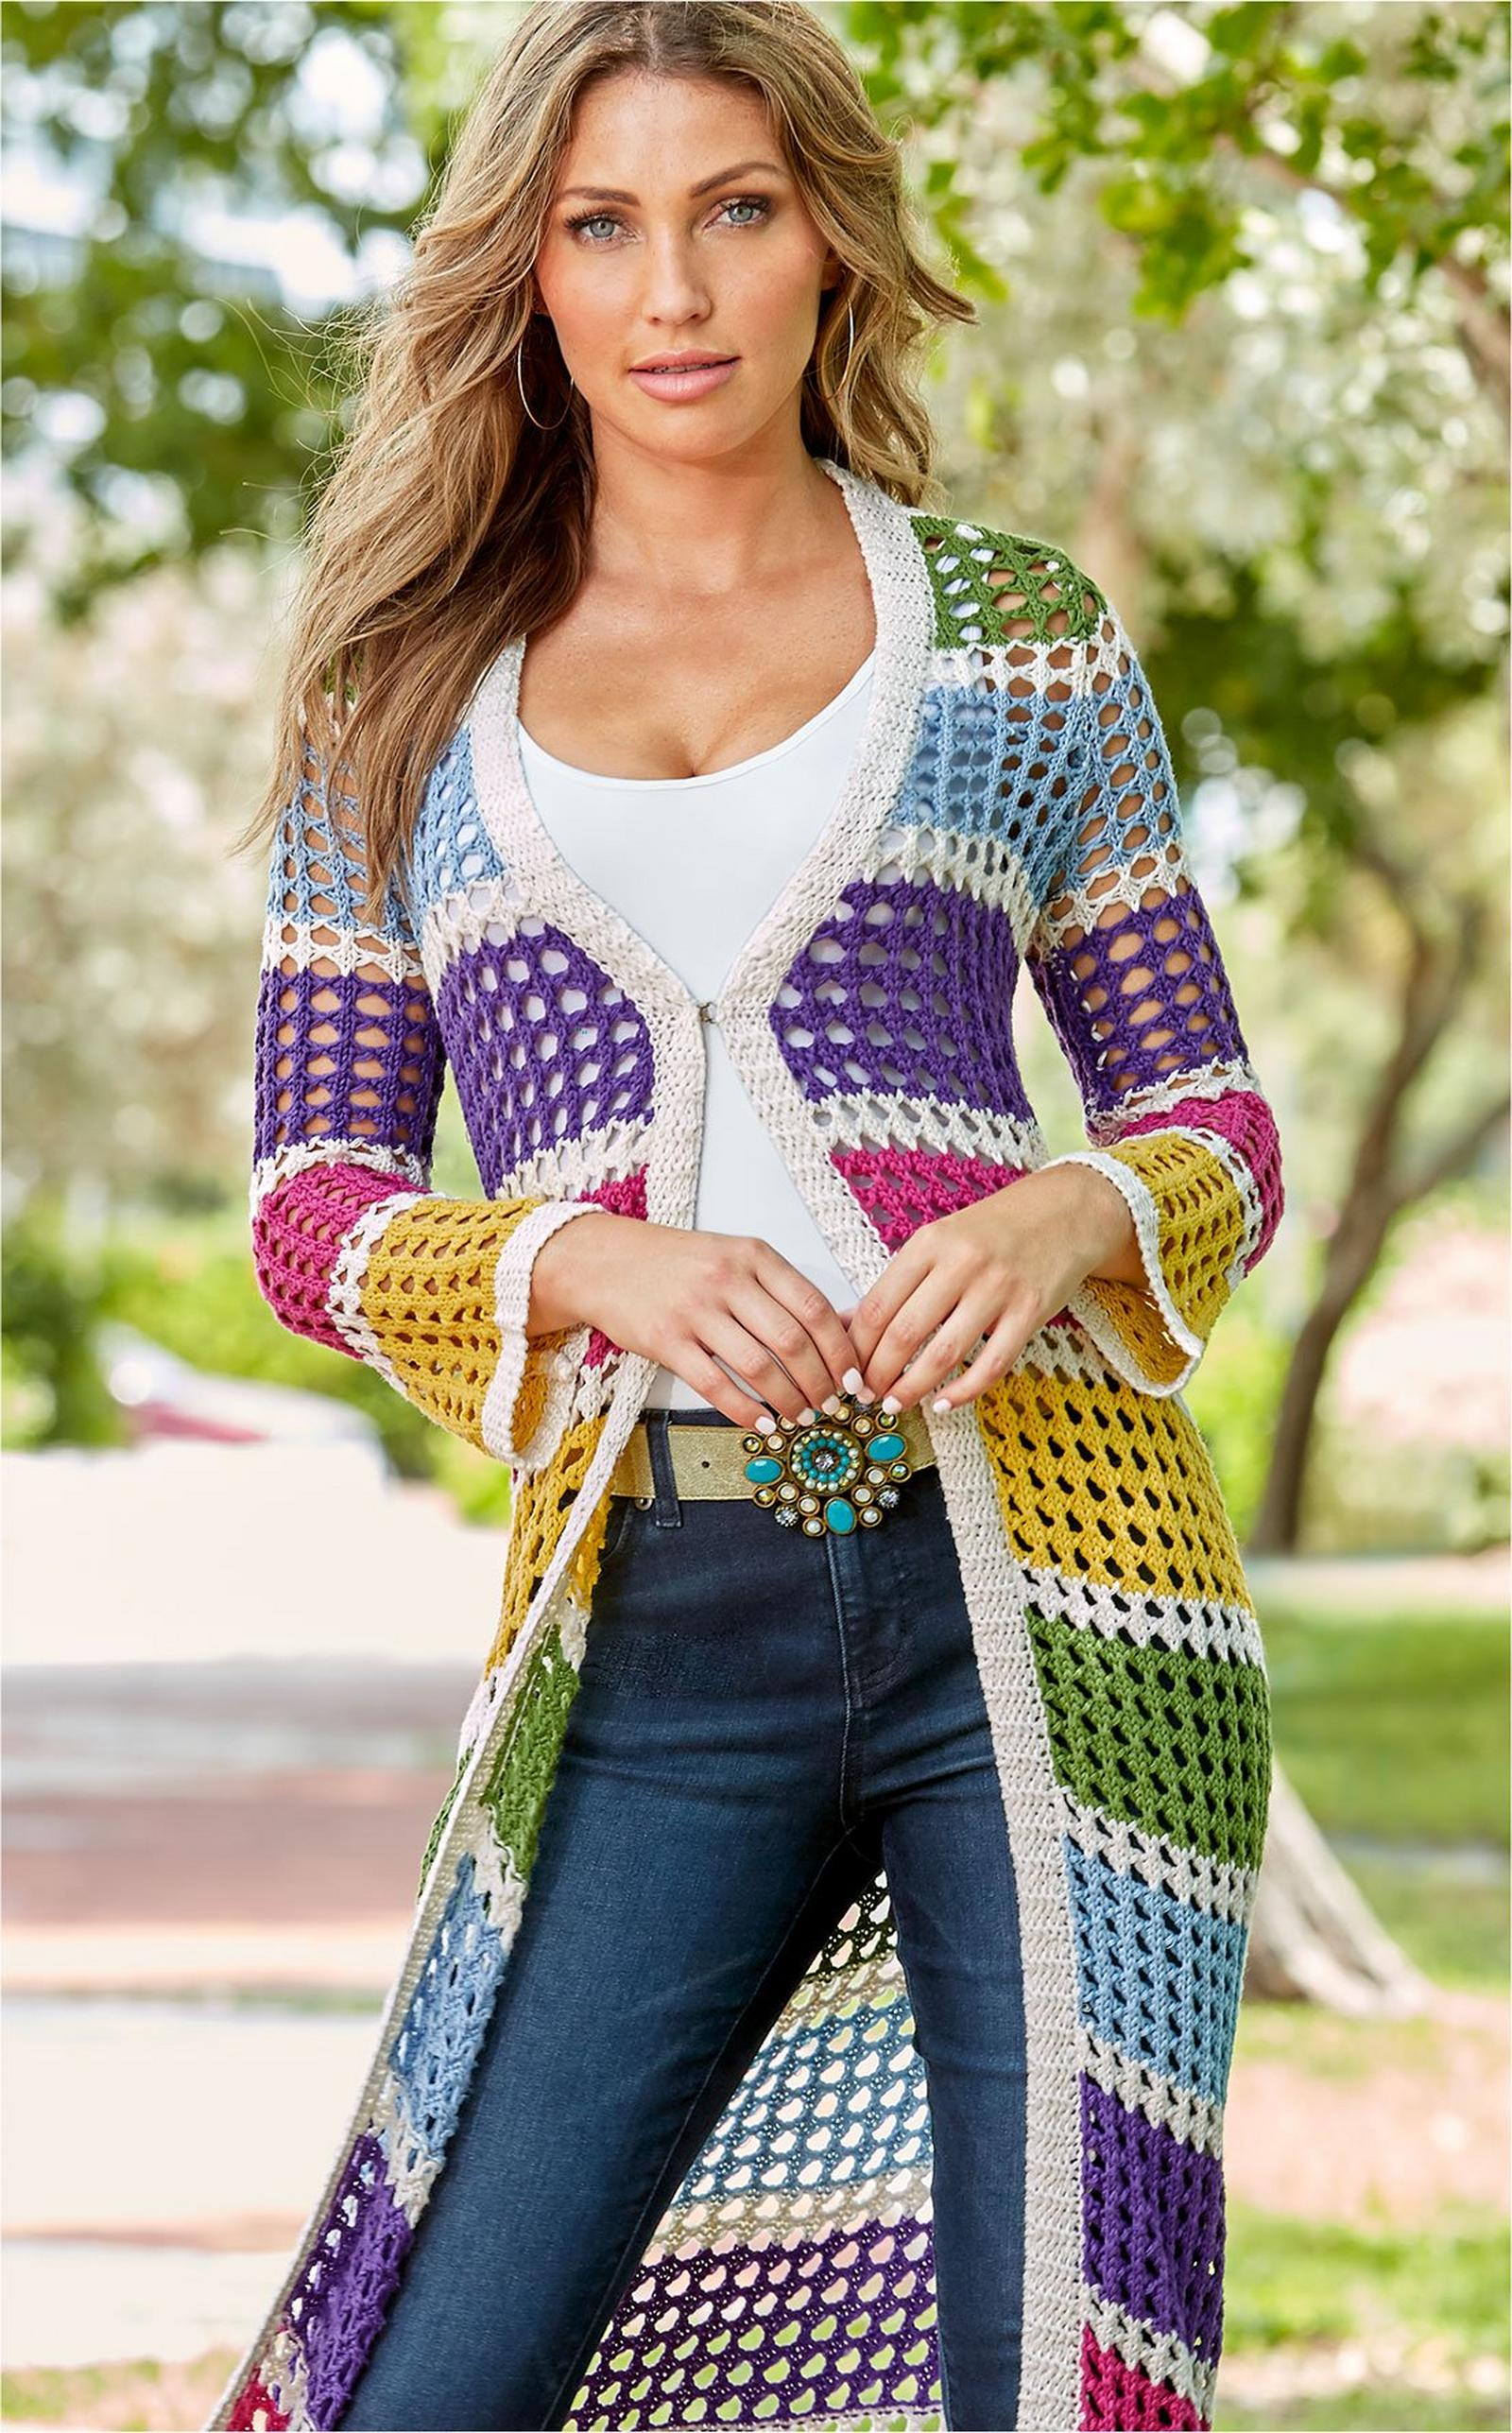 model wearing a multicolored crochet duster over a white tank top, turquoise jewel belt, and jeans.